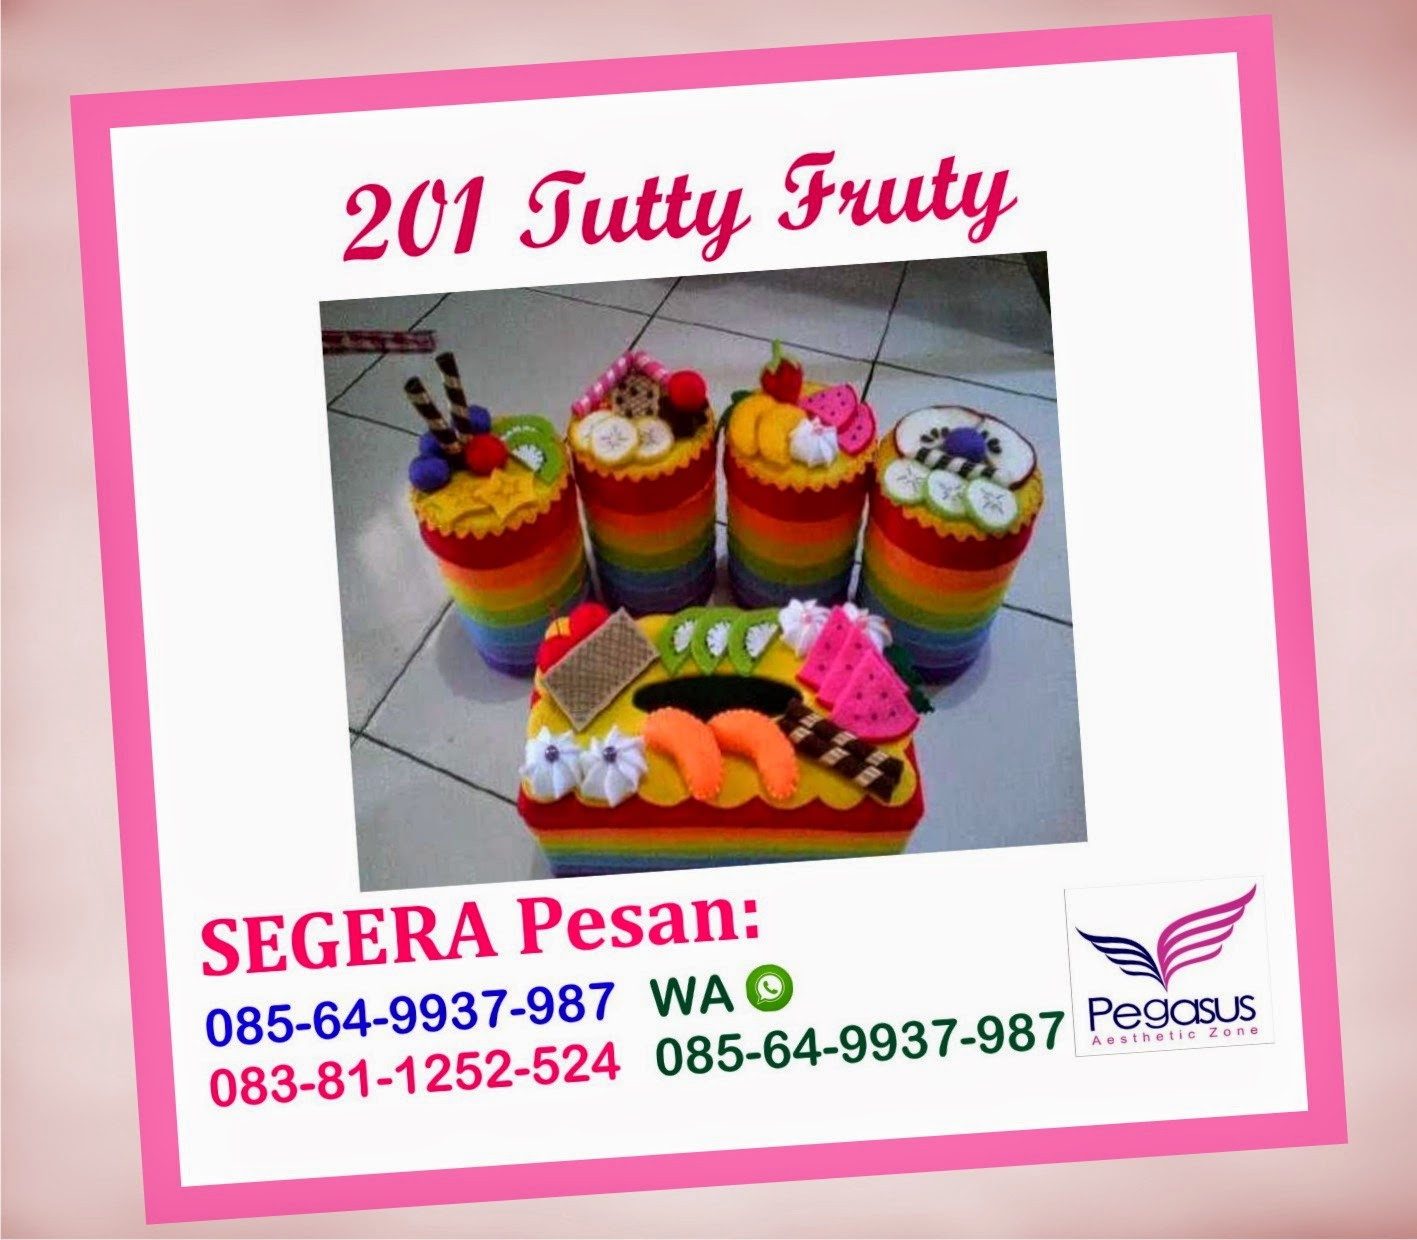 Souvenir Pernikahan, Home Set Karakter, Home Set Lucu, +62.8564.993.7987